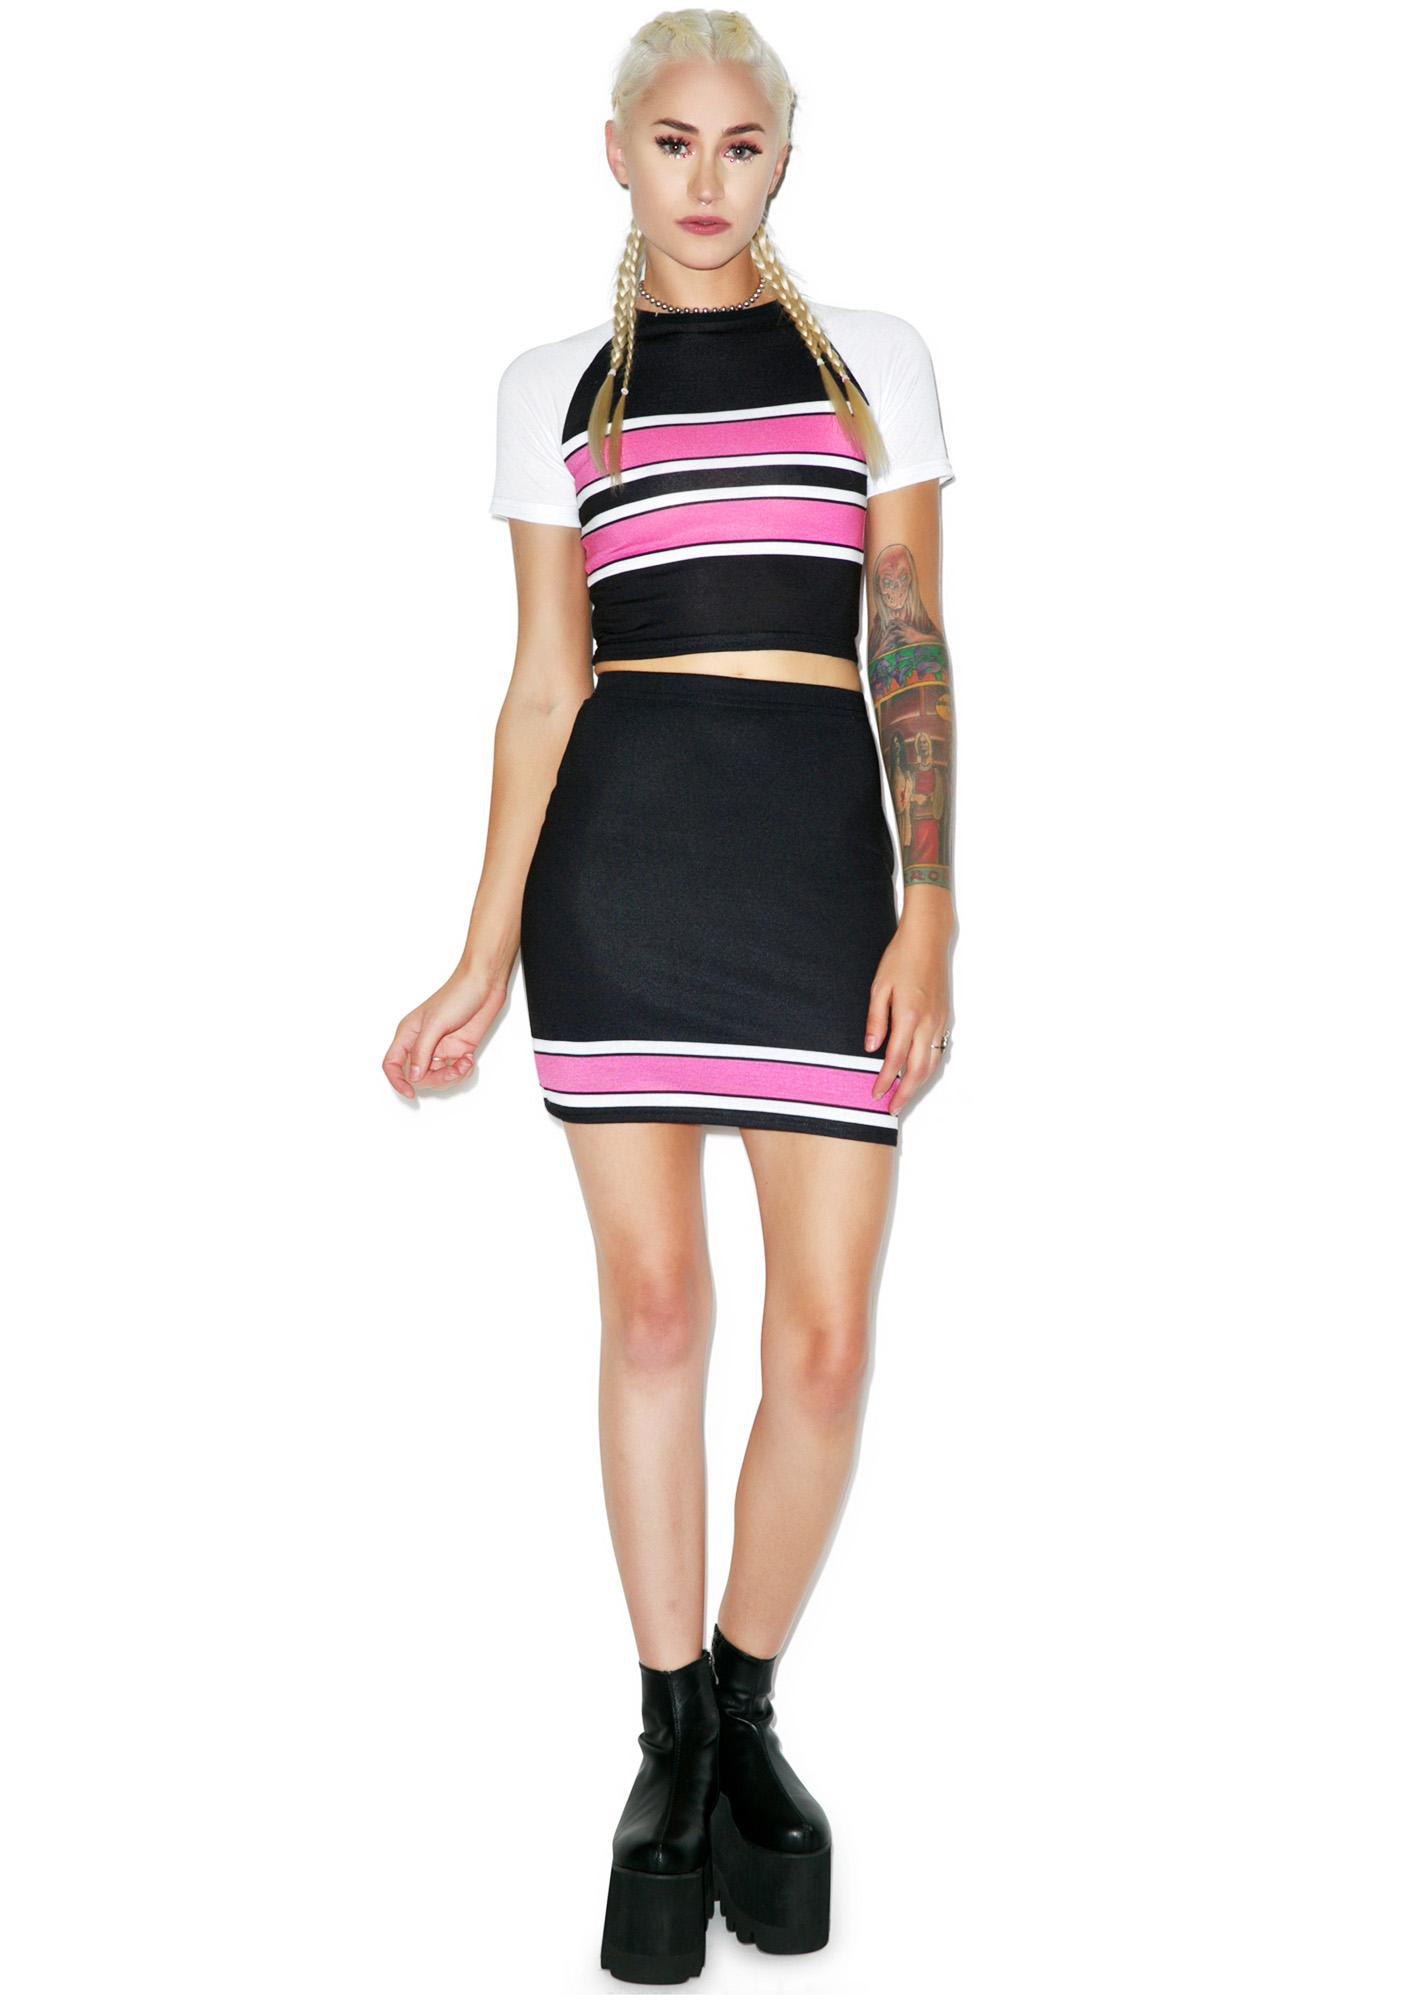 Legally Pink Bodycon Skirt